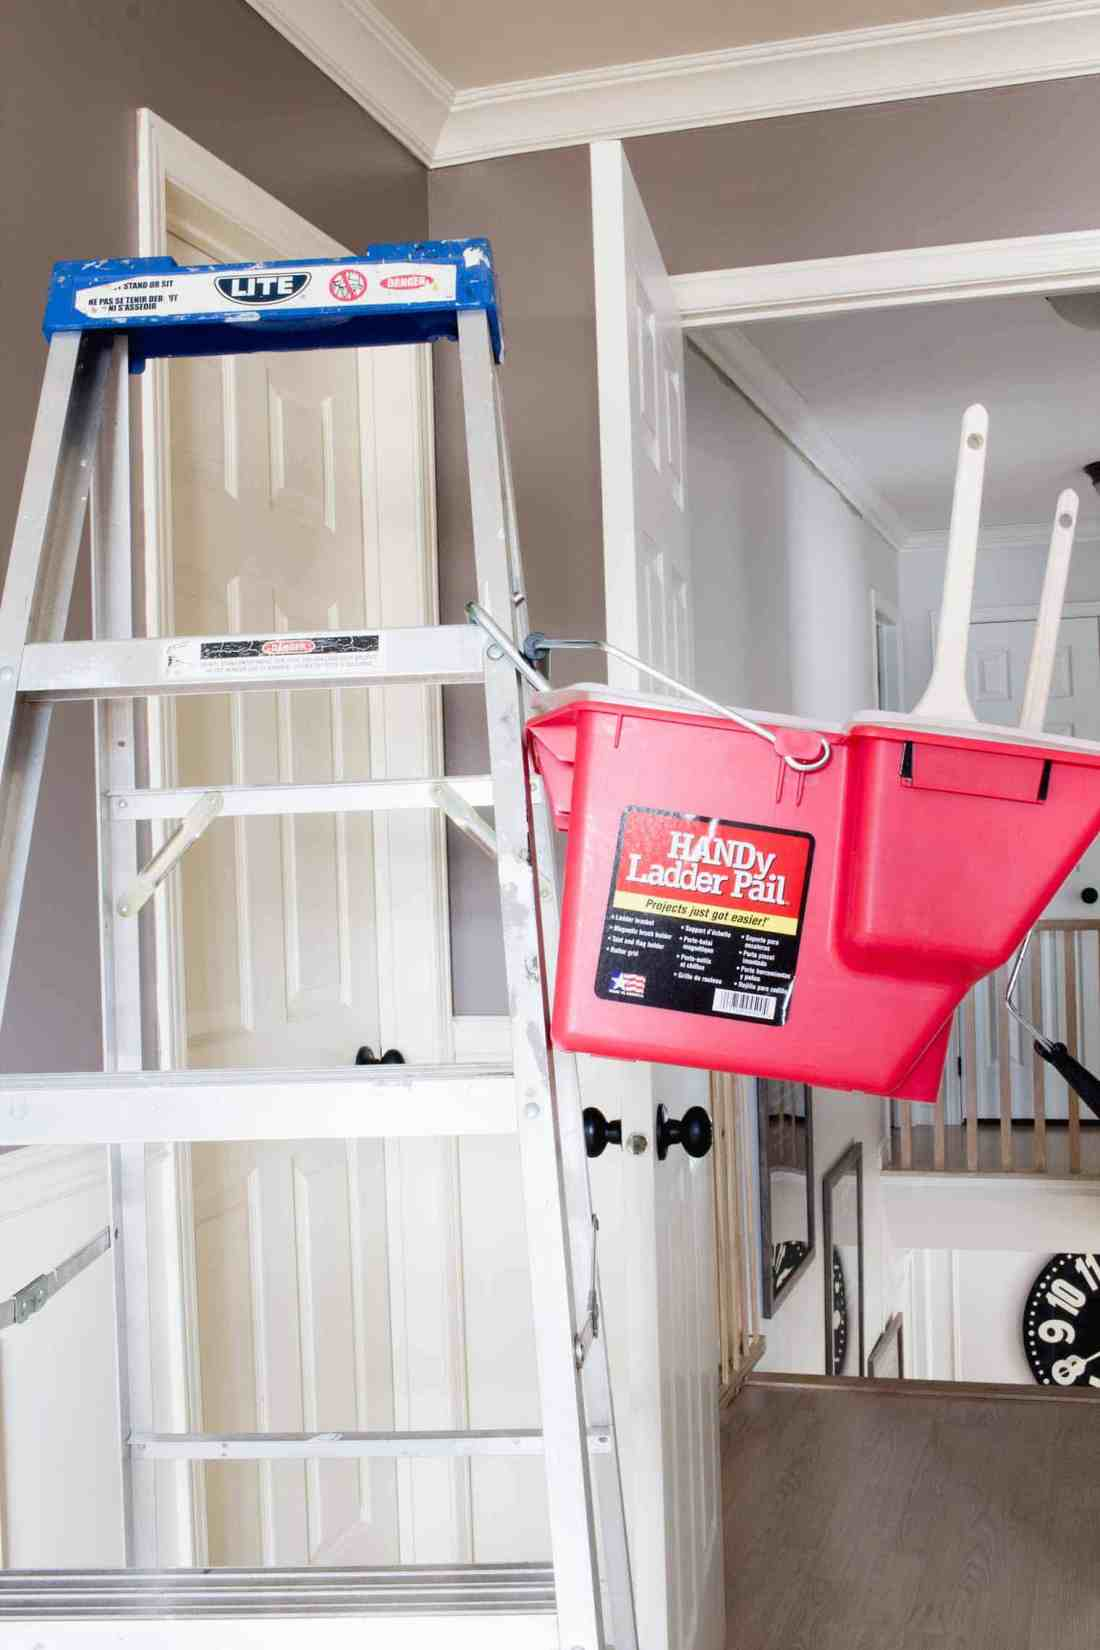 HANDy Paint Ladder Pail on an aluminum ladder